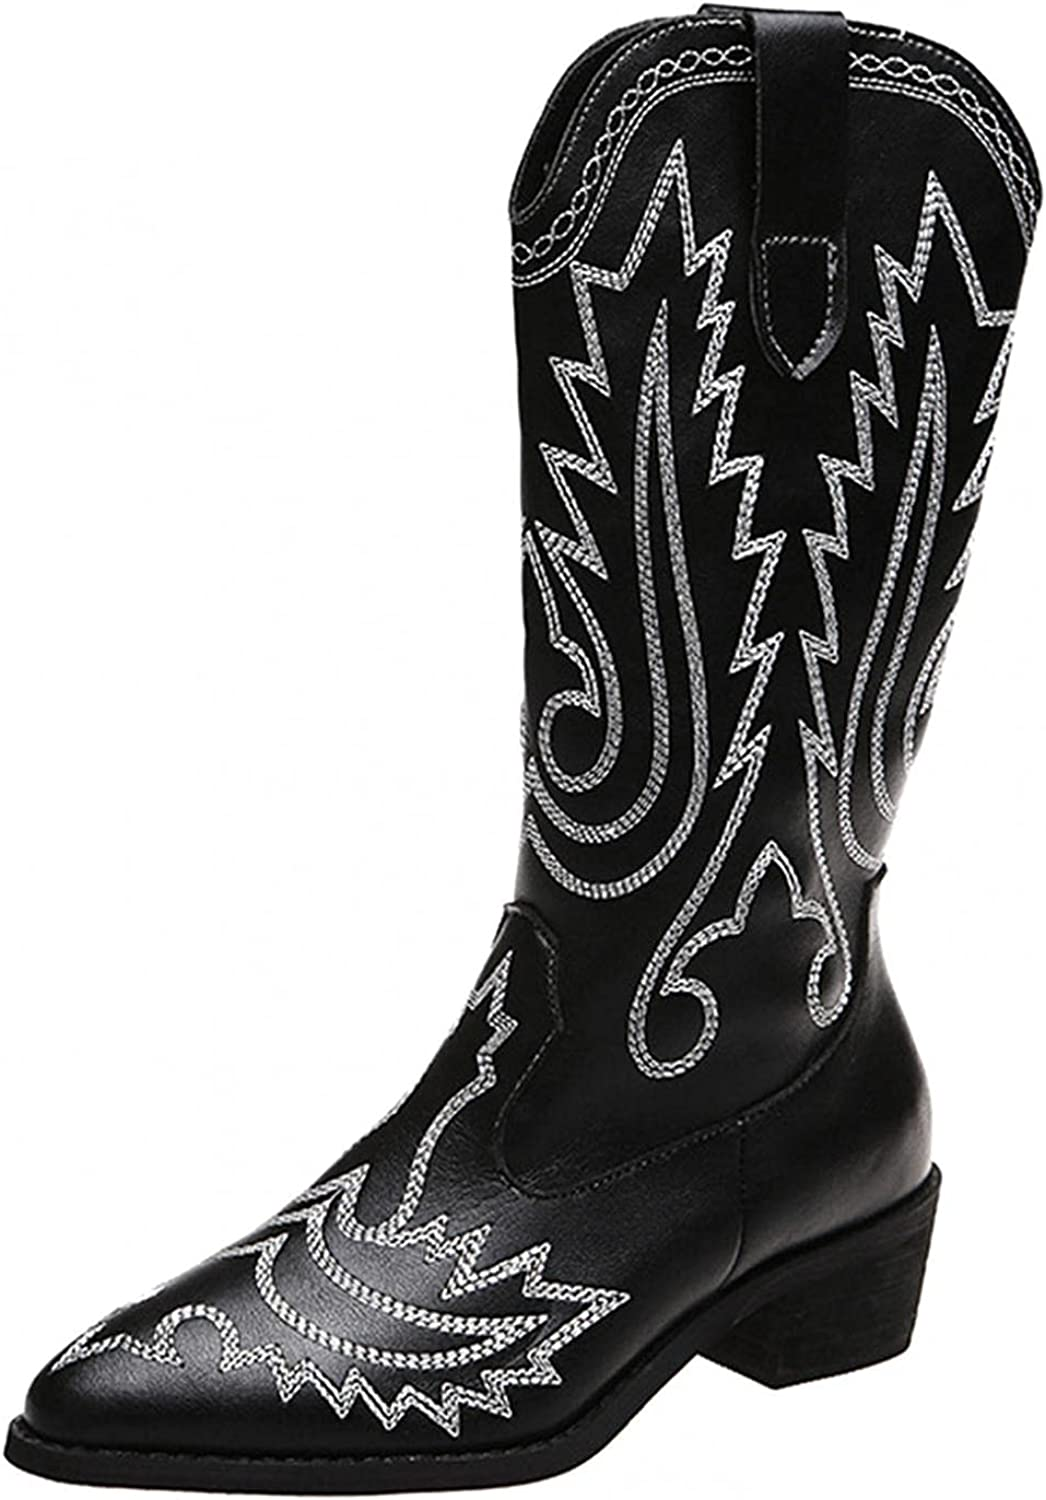 Gibobby Western Boots for Women Cowboy Riding Horse Boots Chunky Heel Mid Calf Boot Pointed Toe Embroidered Casual Boots